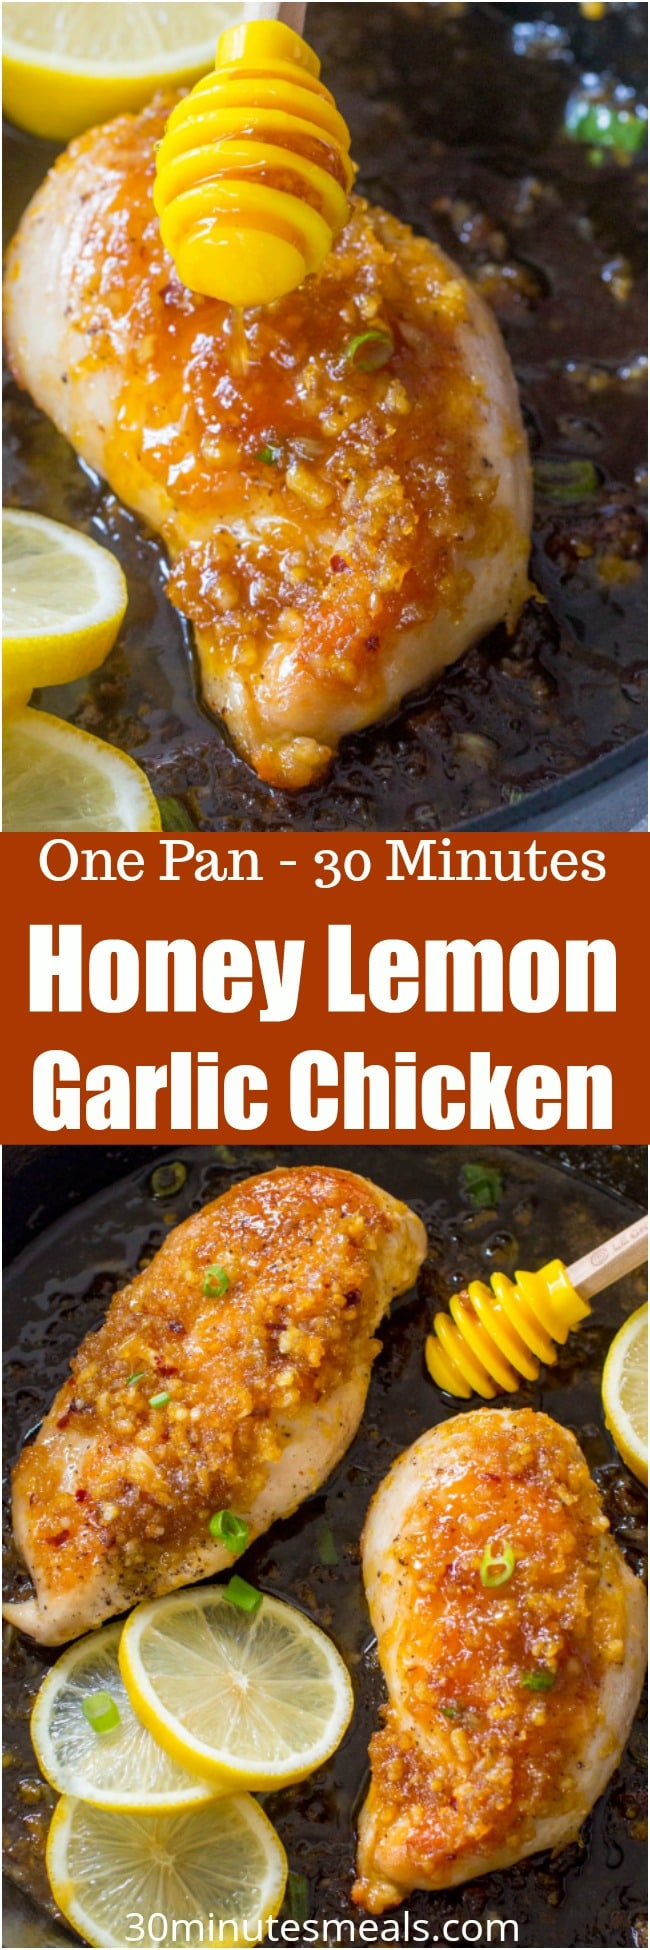 Honey Lemon Garlic Chicken is such a juicy meal made easy in one pan in 30 minutes. Perfectly sticky, aromatic and refreshing, this meal is always a hit.